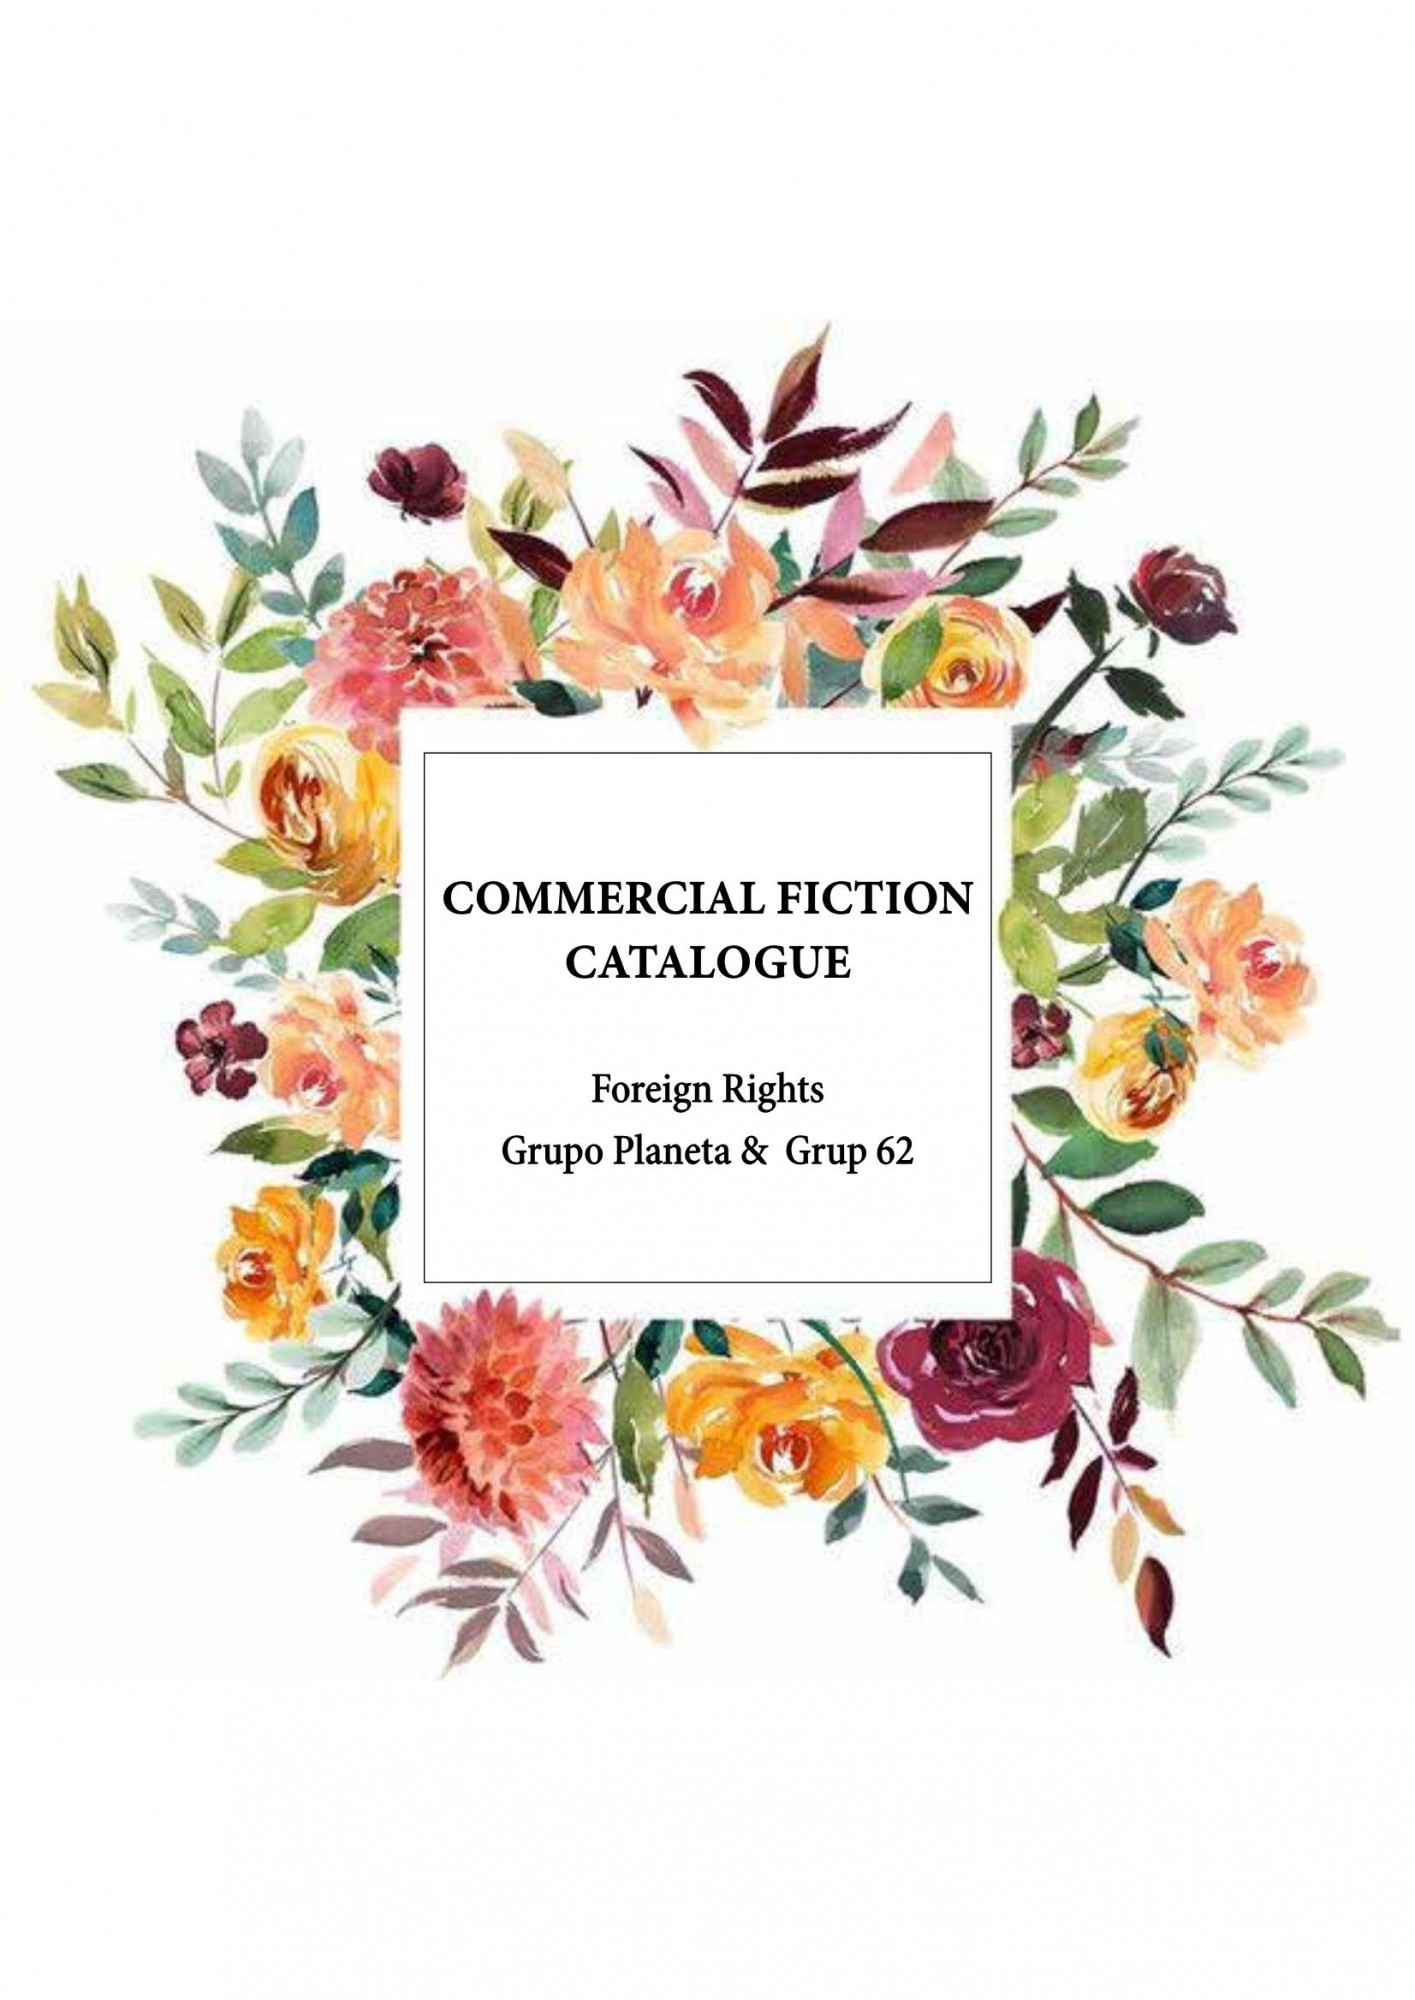 Commercial Fiction Catalogue London 2019